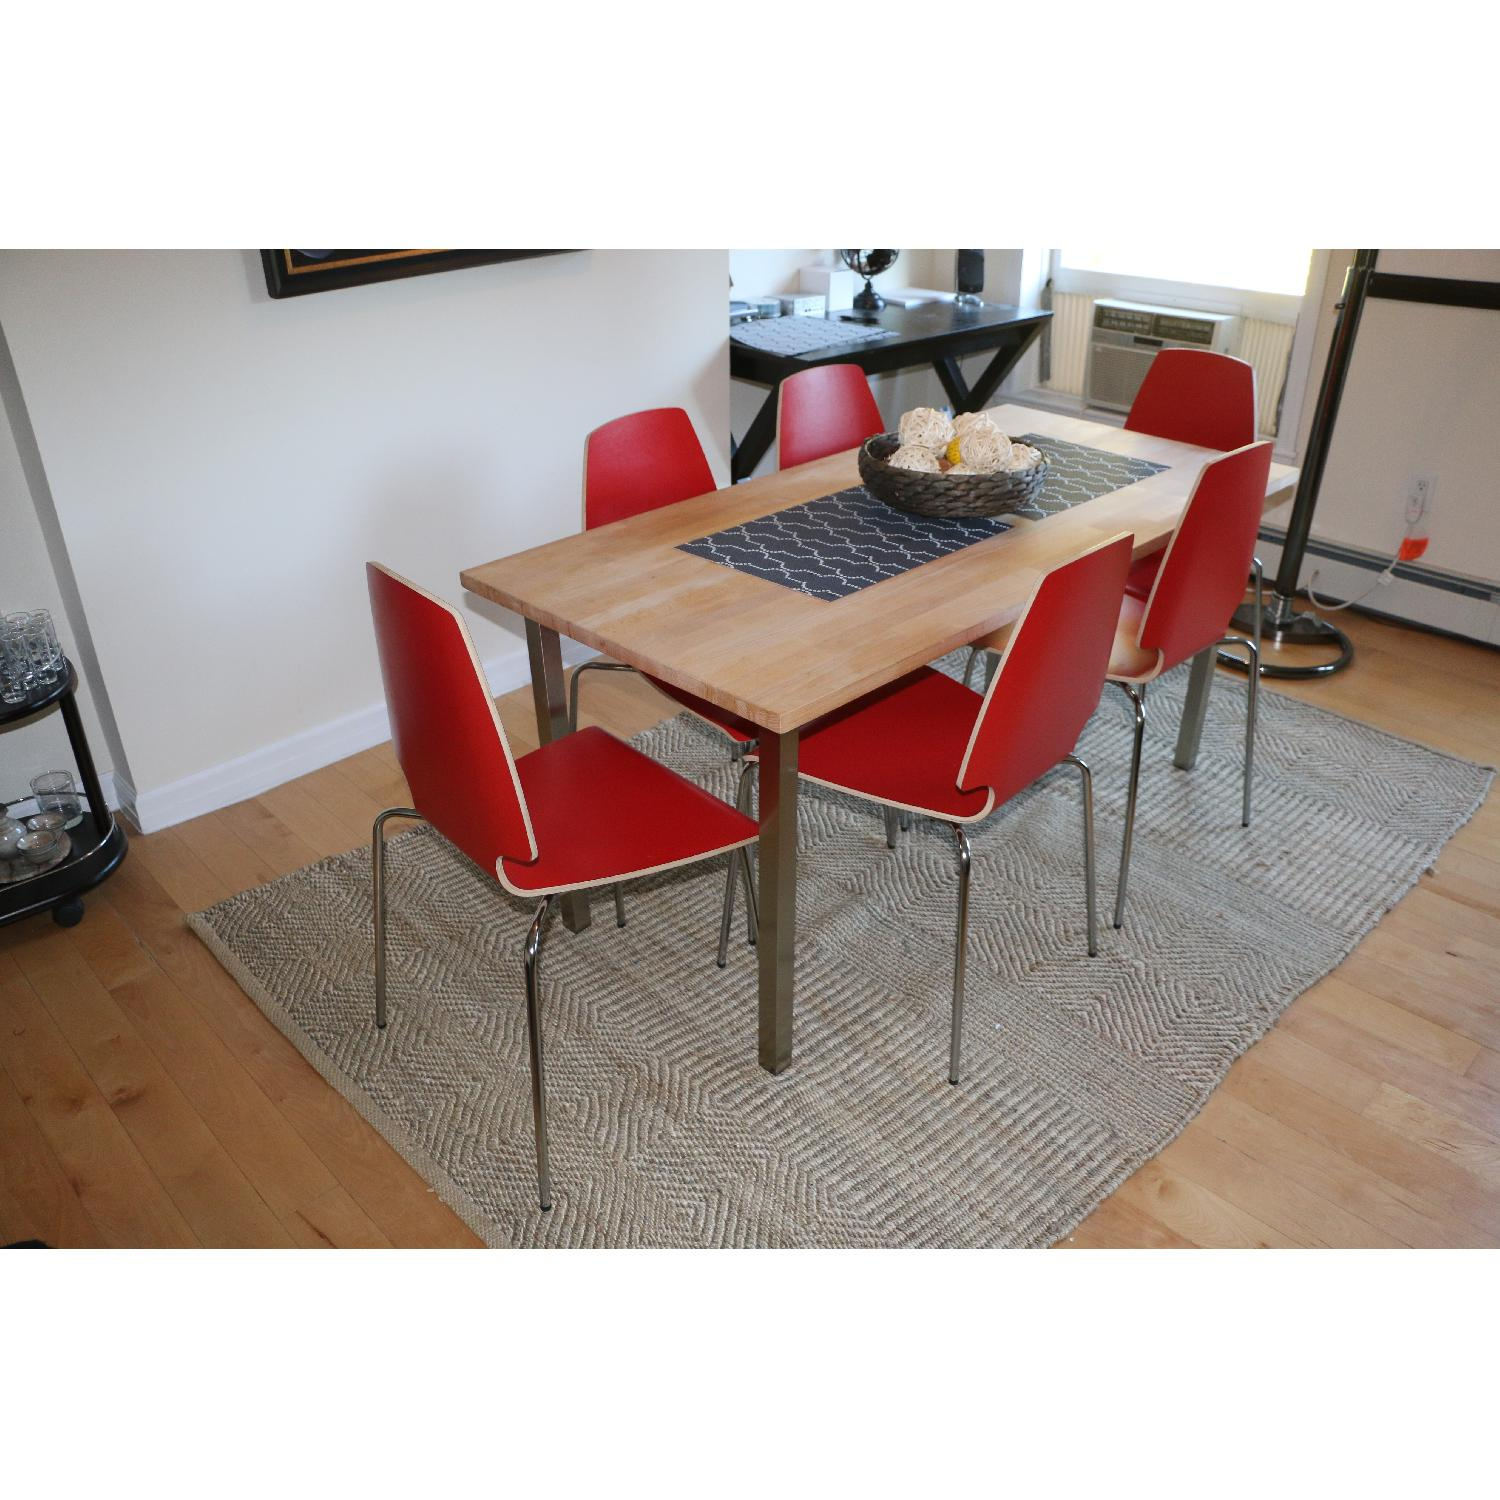 Ikea Vilmar Red Dining Chairs - image-2